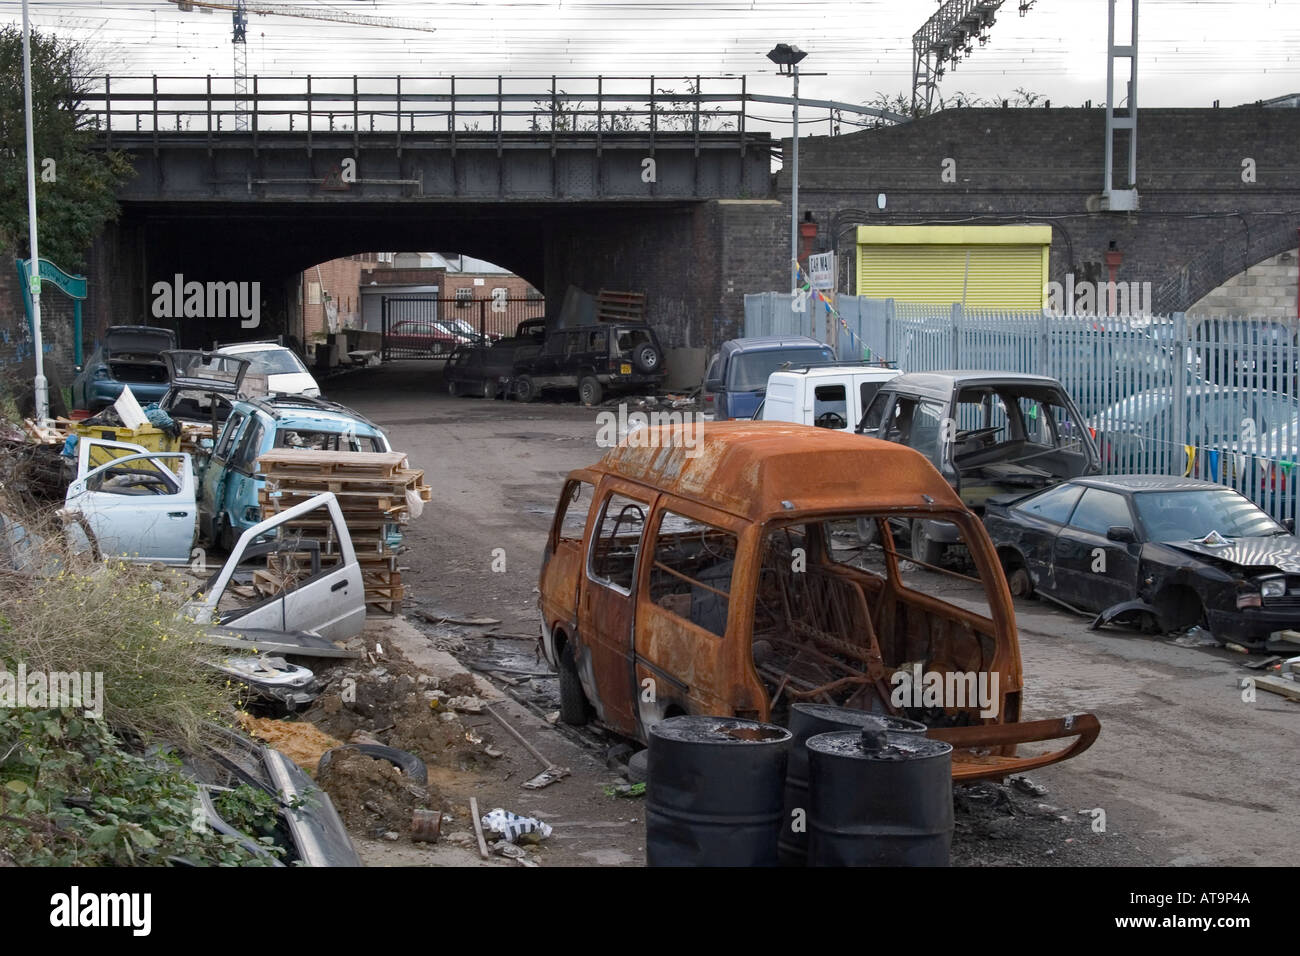 Abandoned wrecked cars and rubbish. Marshgate Lane, Stratford ...